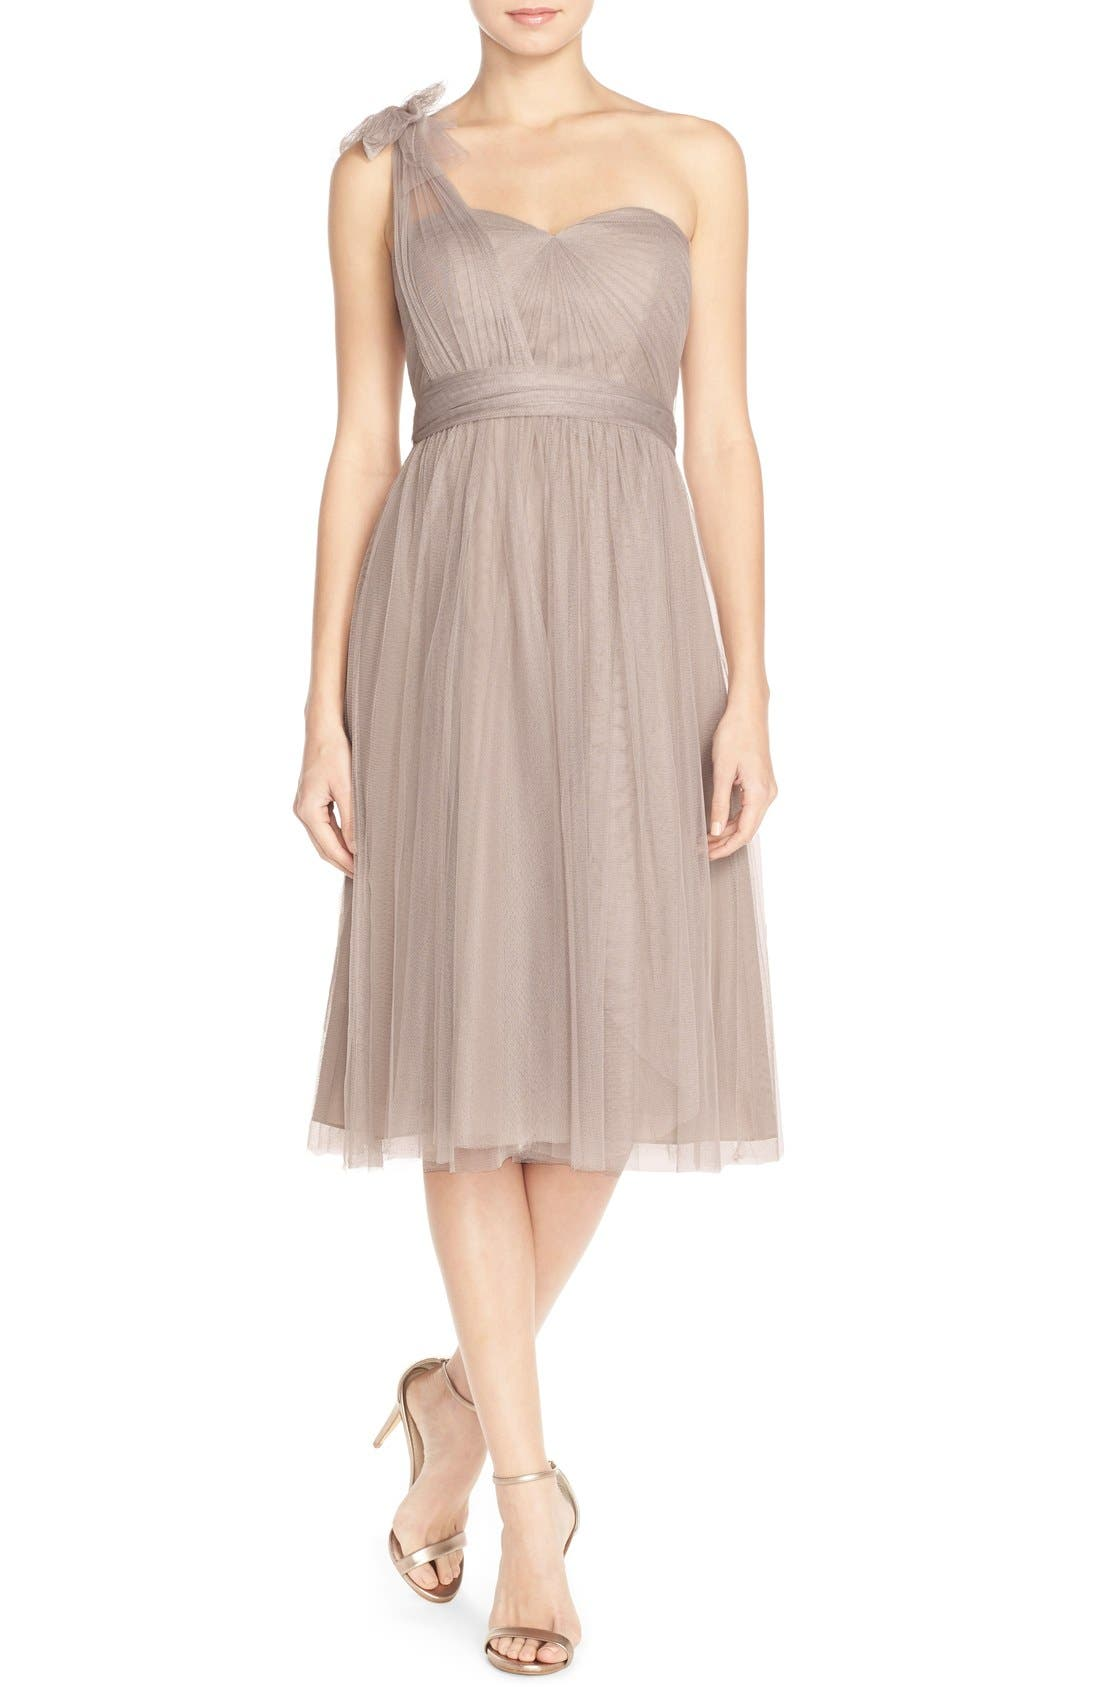 Alternate Image 3  - Jenny Yoo 'Maia' Convertible Tulle Tea Length Fit & Flare Dress